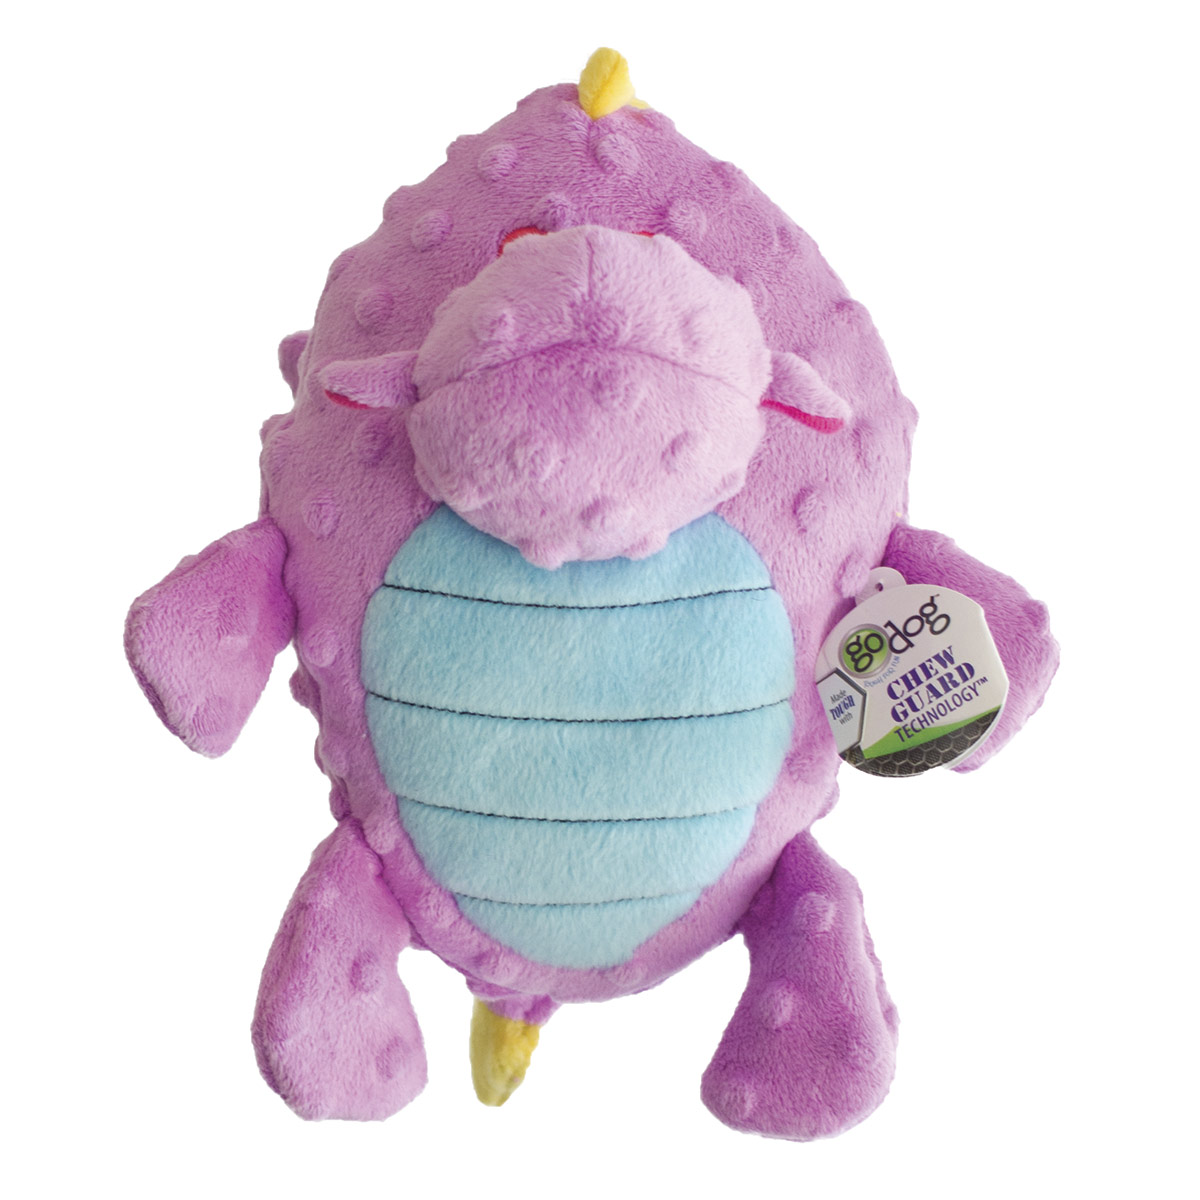 goDog Violet Large Dragons with Chew Guard - Grunting Dog Toy